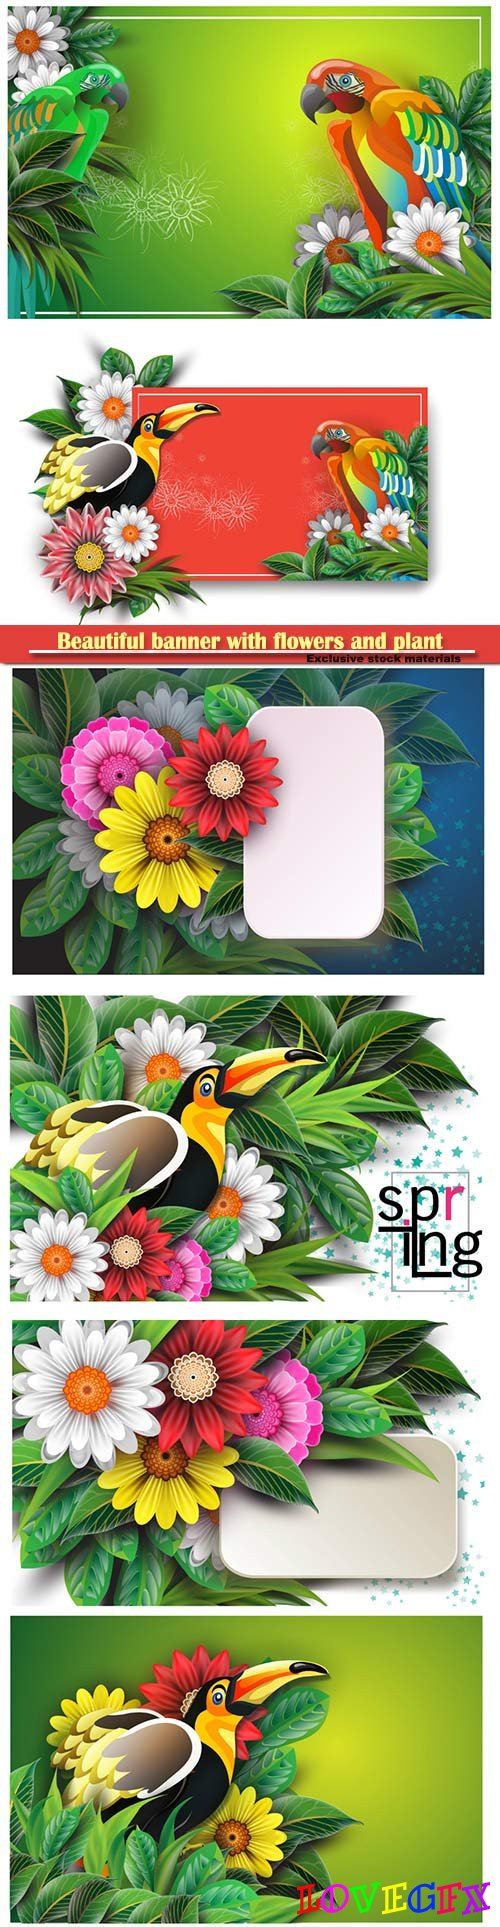 Beautiful banner with flowers and plant fronds set with bird